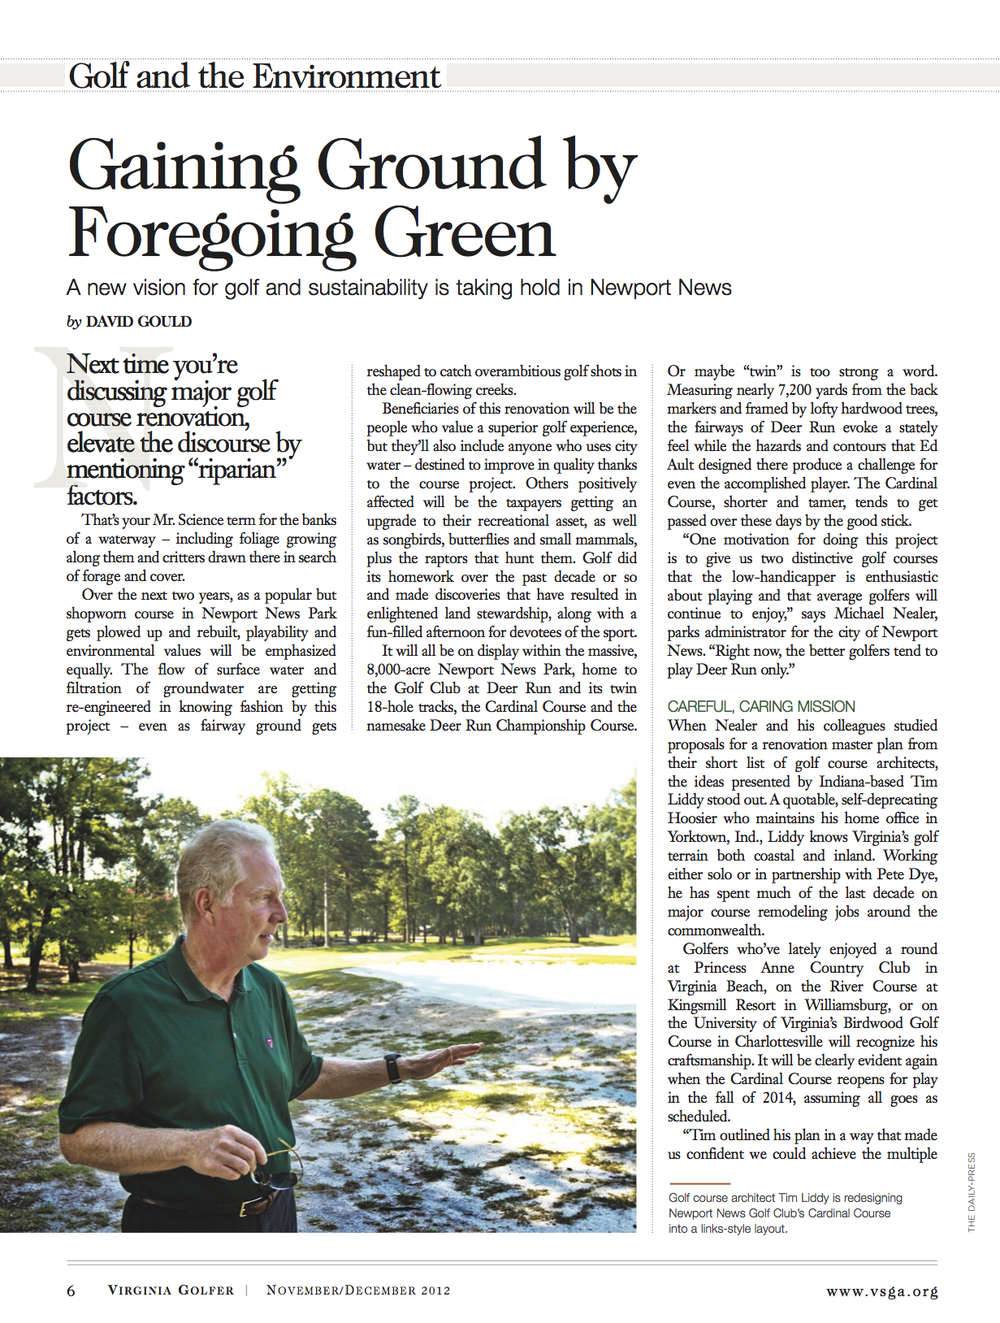 a Gaining Ground by Foregoing Green Article (November December 2012 Virginia Golfer).jpg